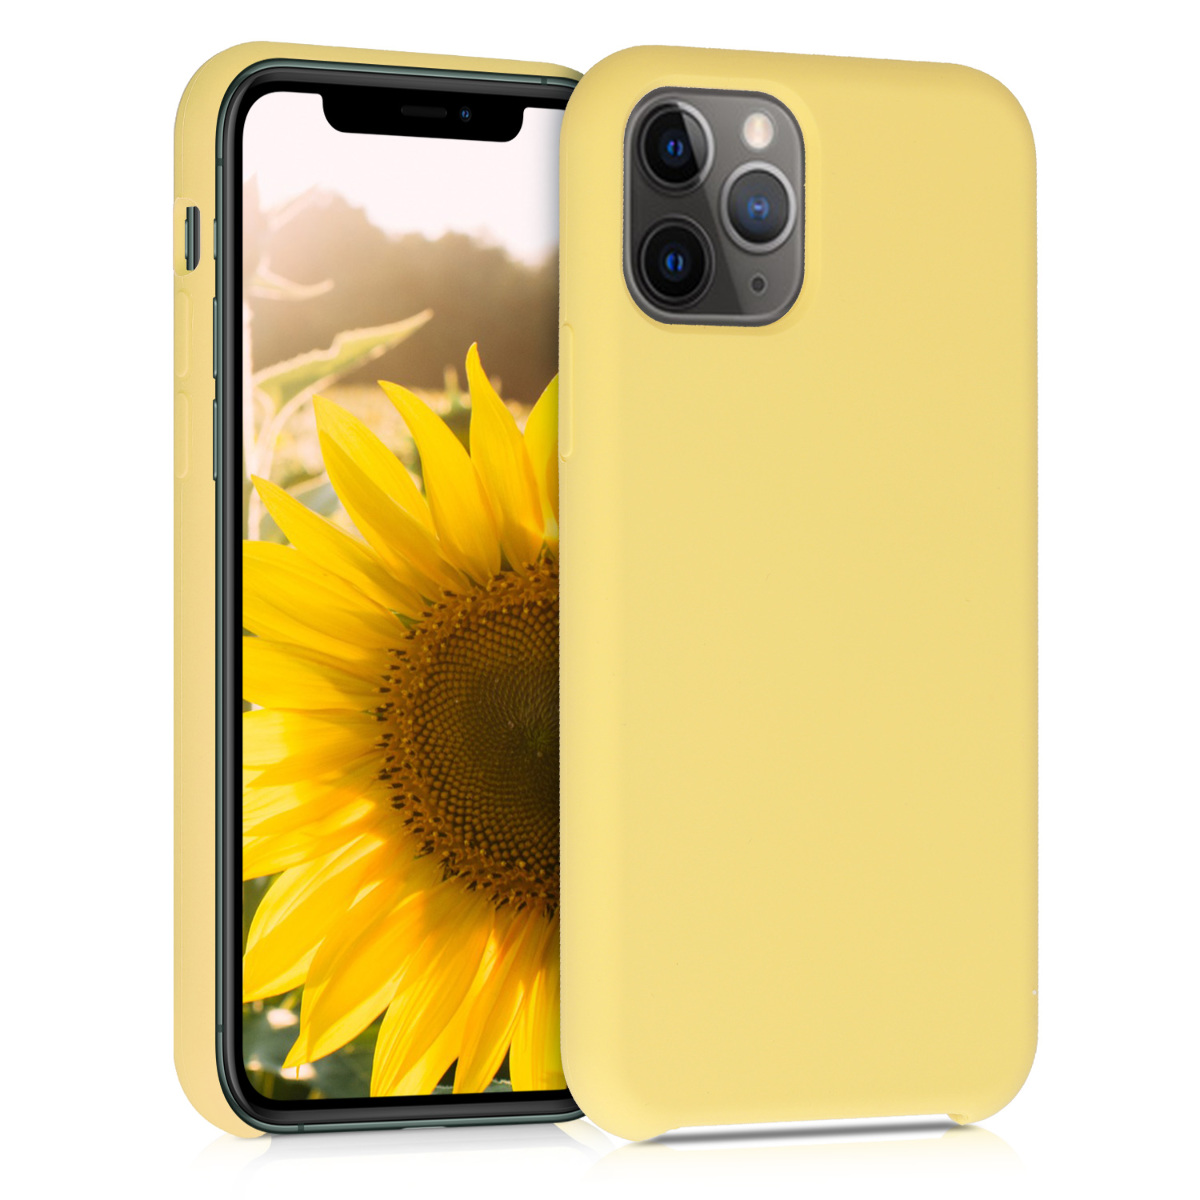 KW Θήκη Σιλικόνης Apple iPhone 11 Pro - Soft Flexible Rubber - Yellow (49726.49)